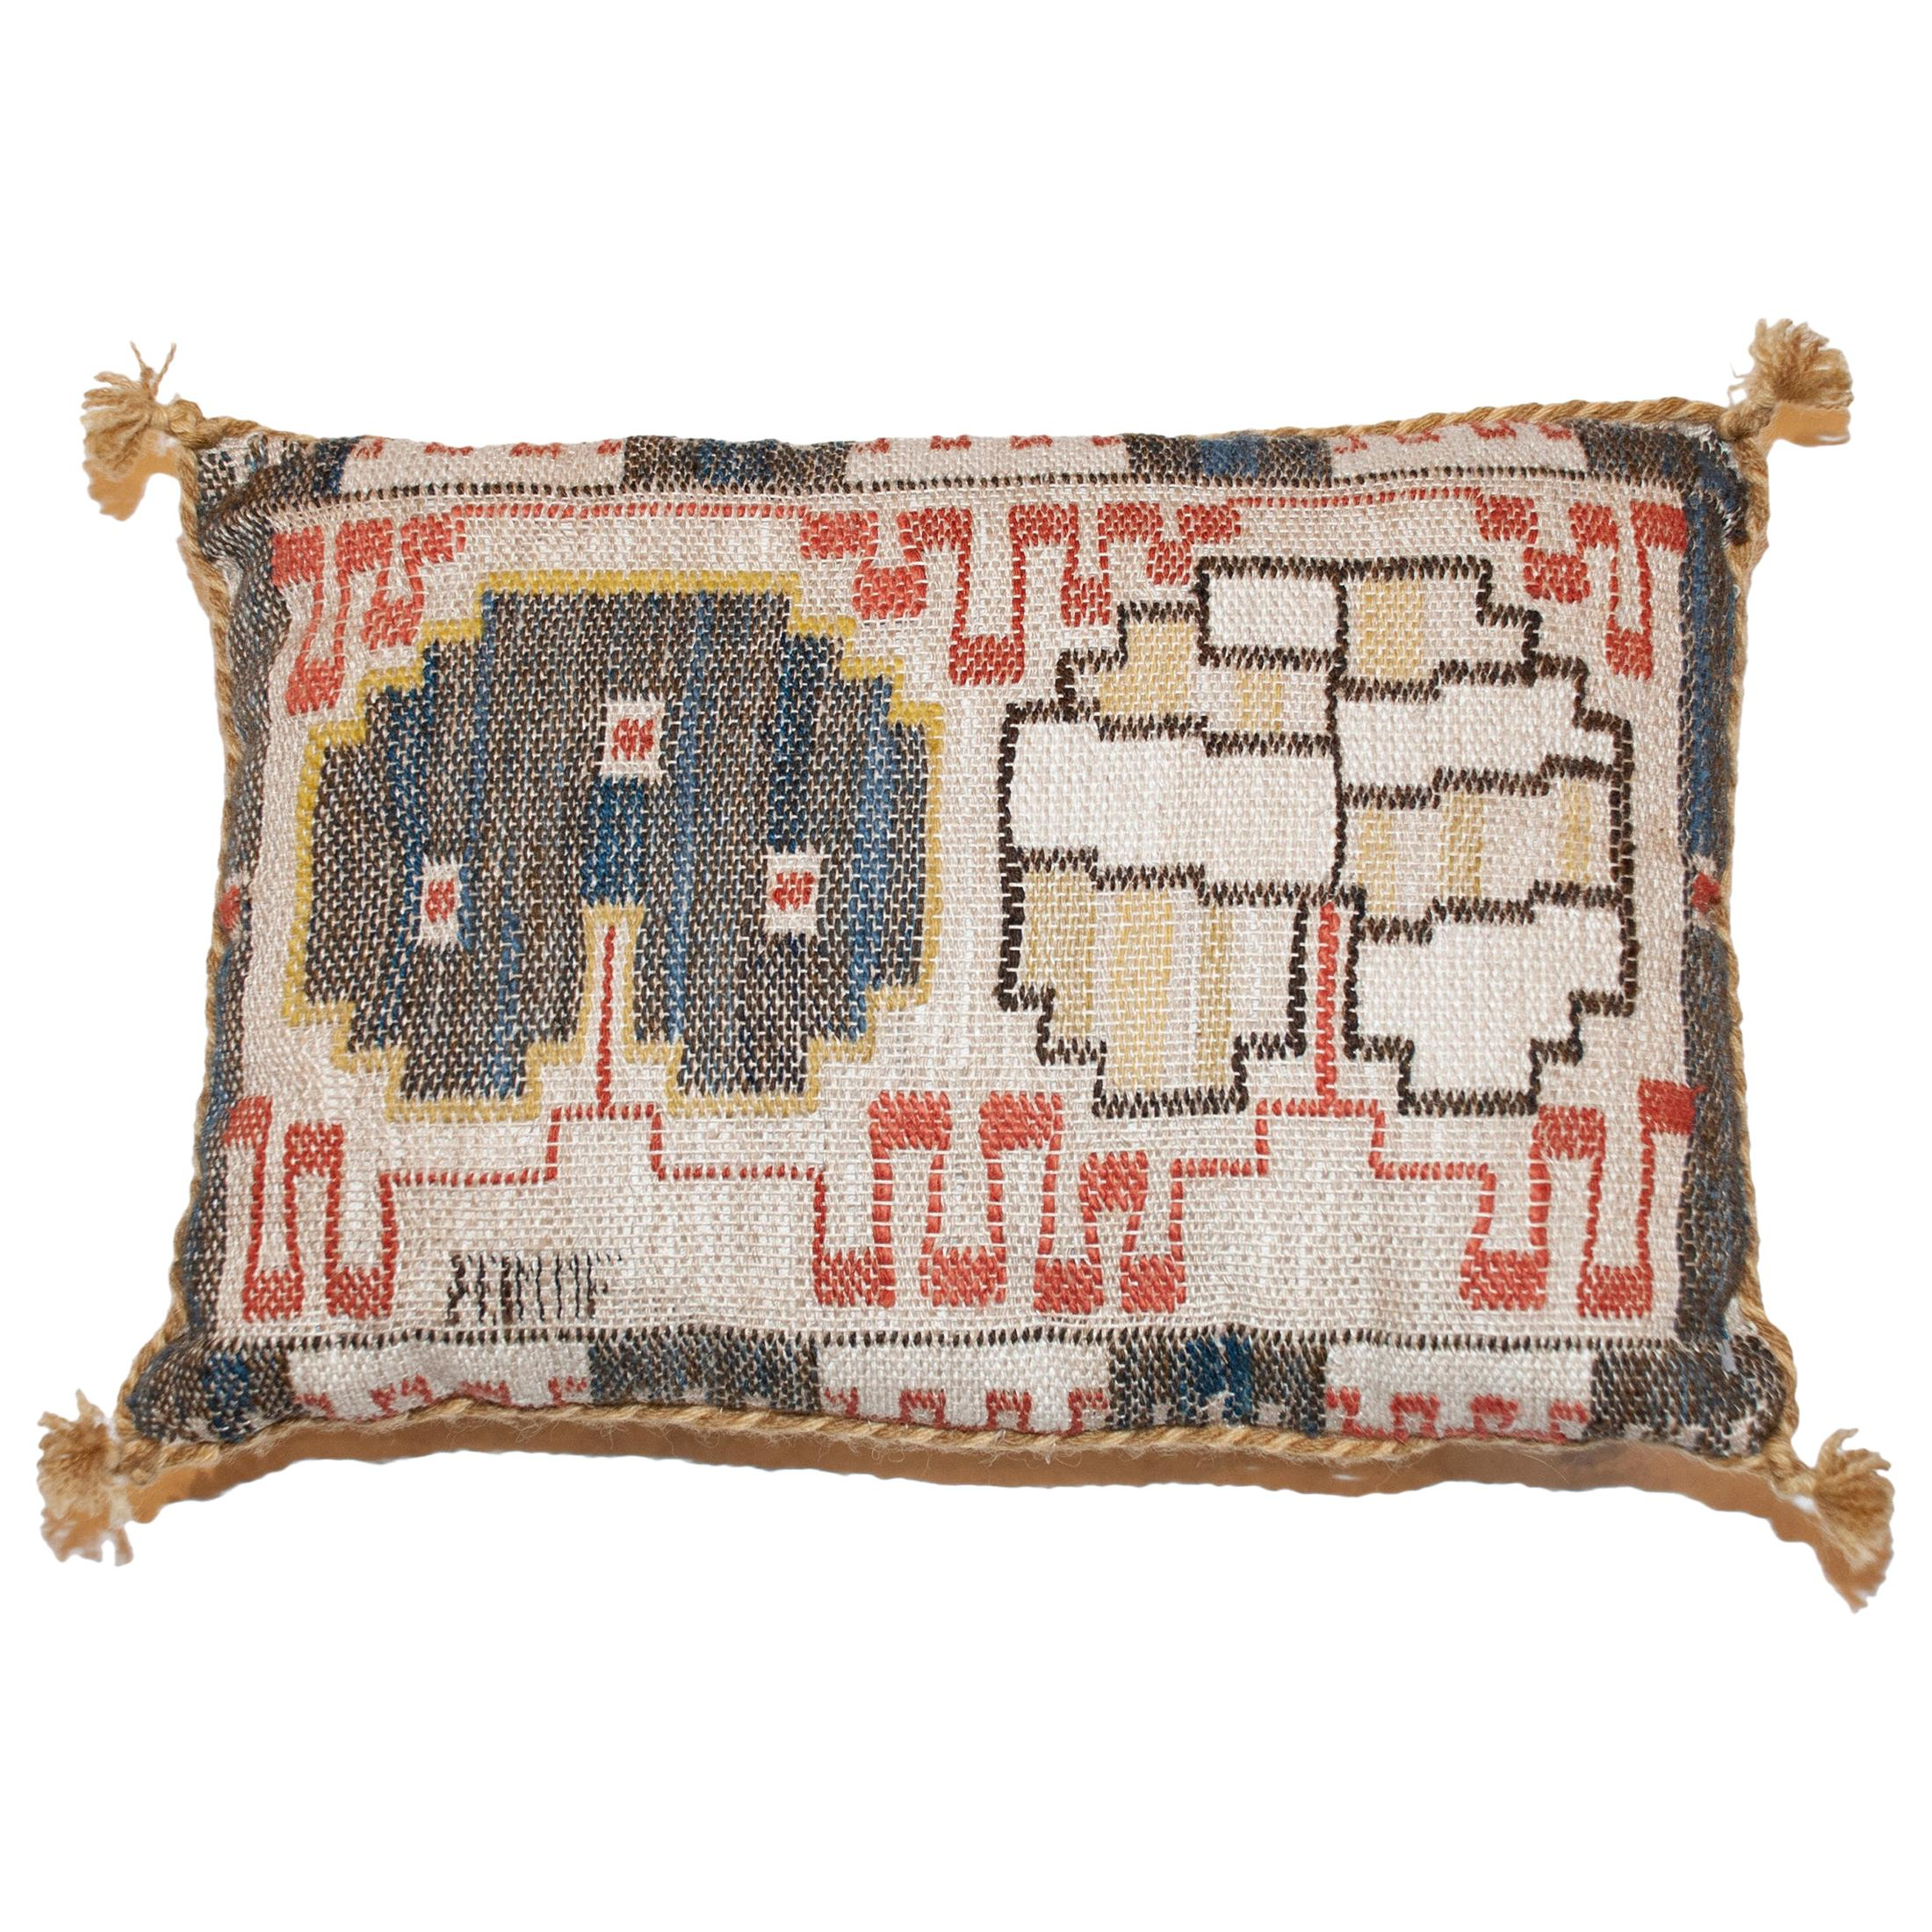 Mid 20th Century Swedish Pillow by AB Märta Måås-Fjetterström